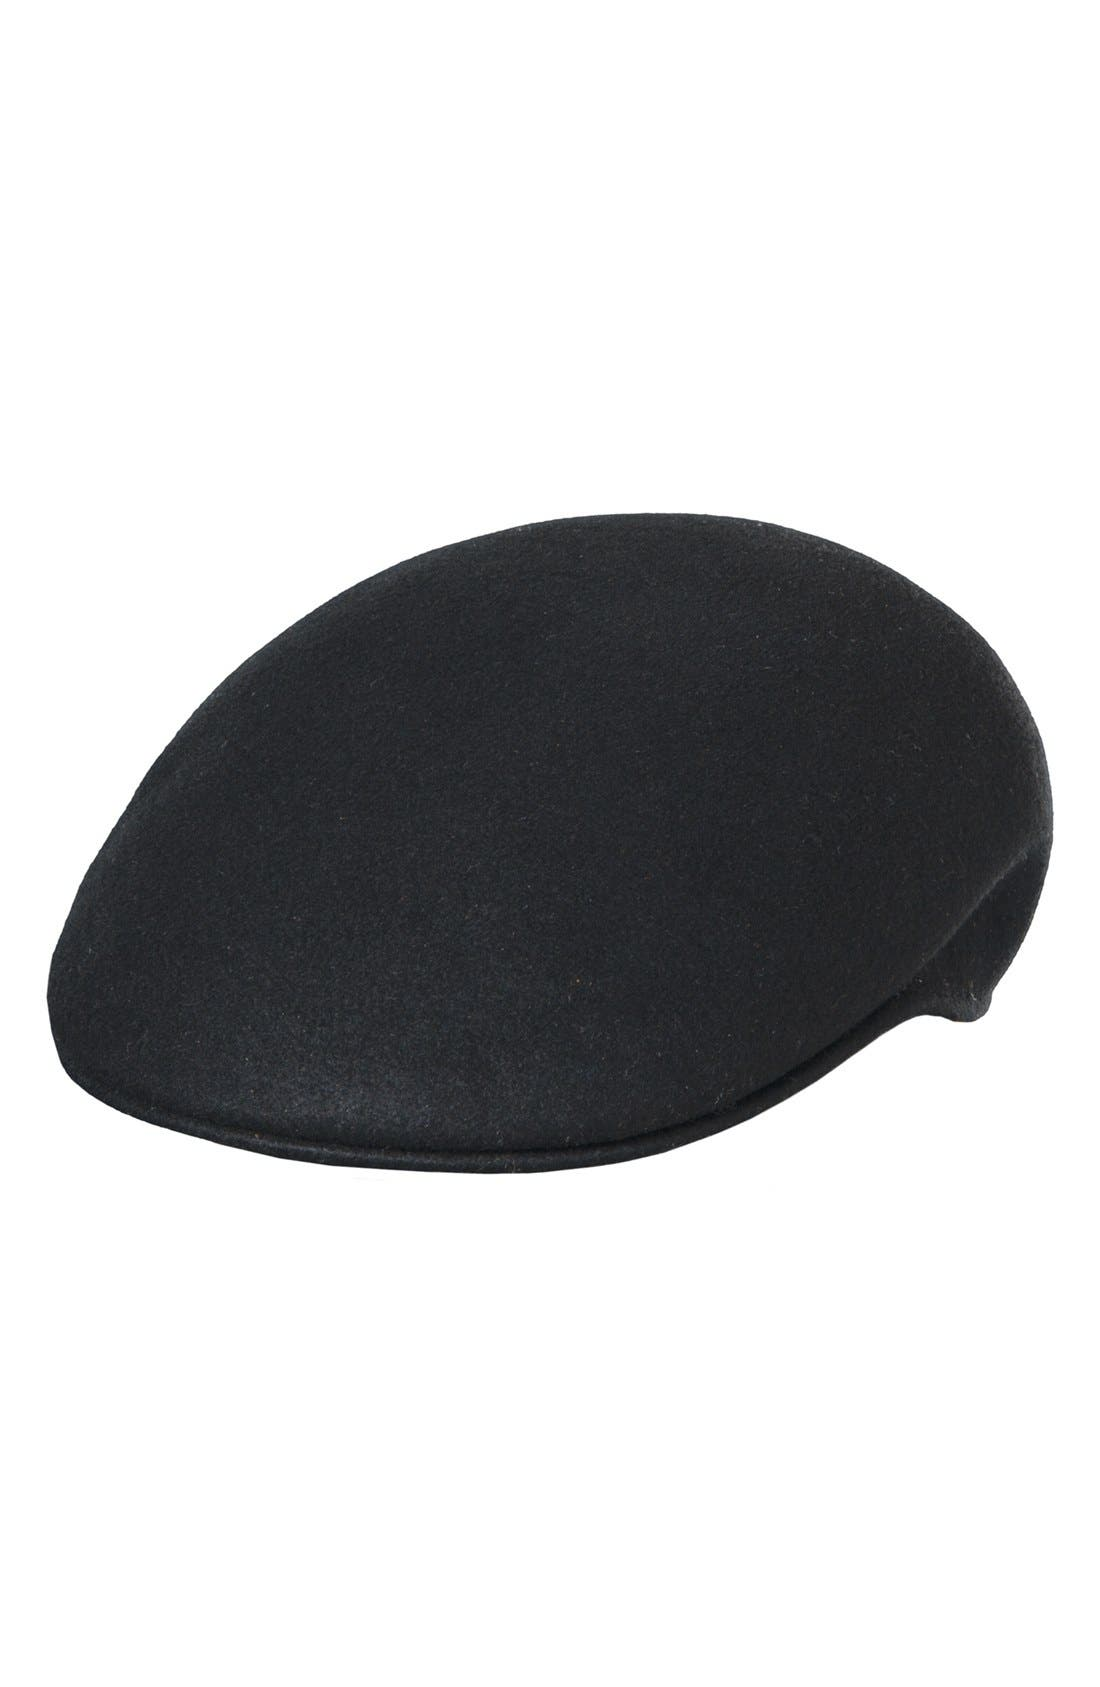 Scala Classico Crushable Felt Driving Cap